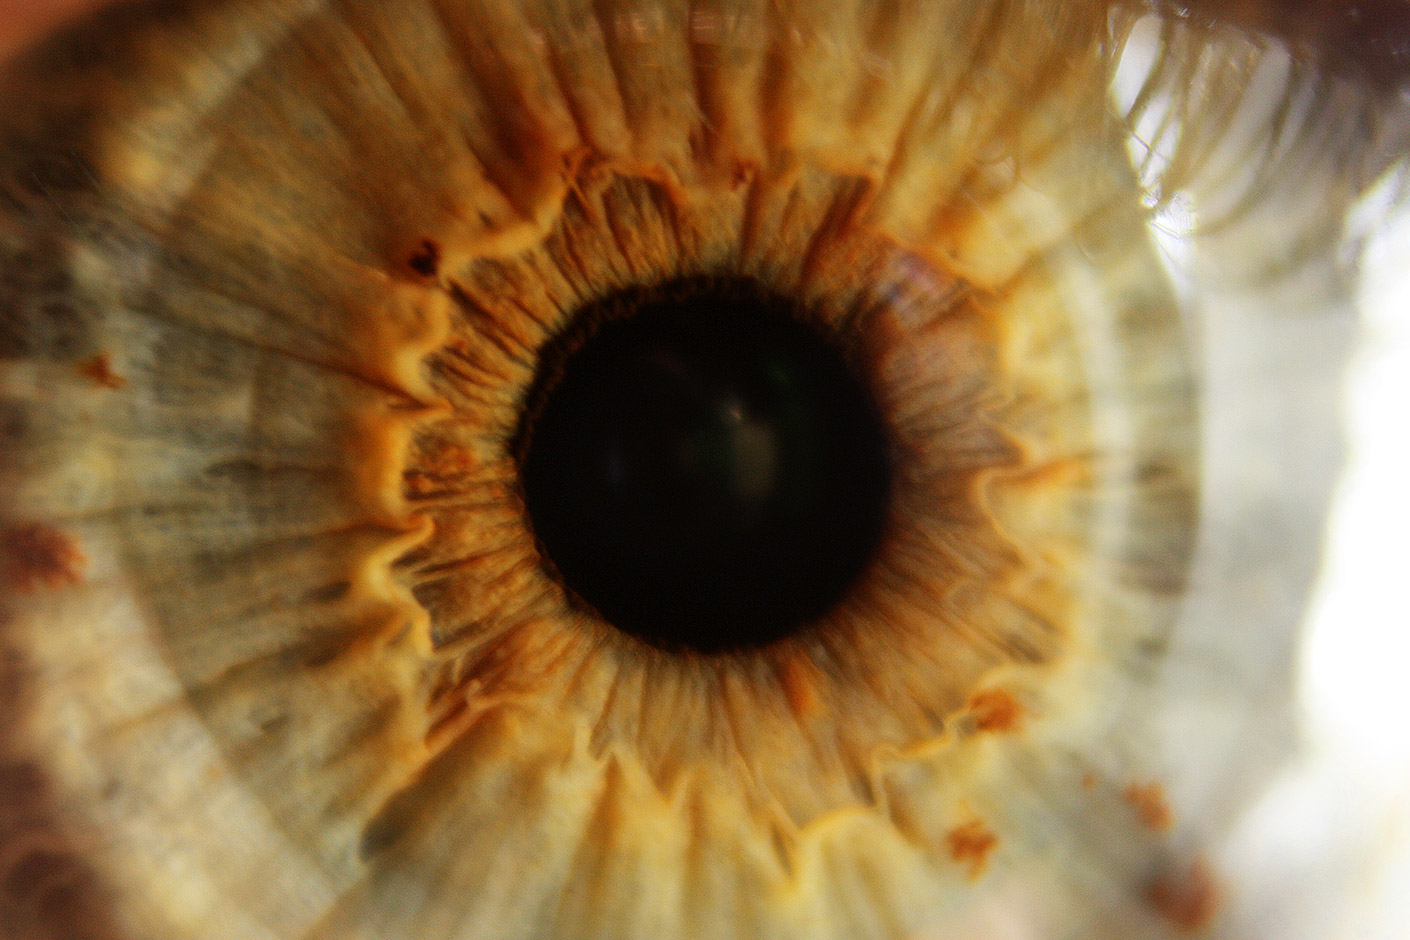 macro photo of hazel eye zoom